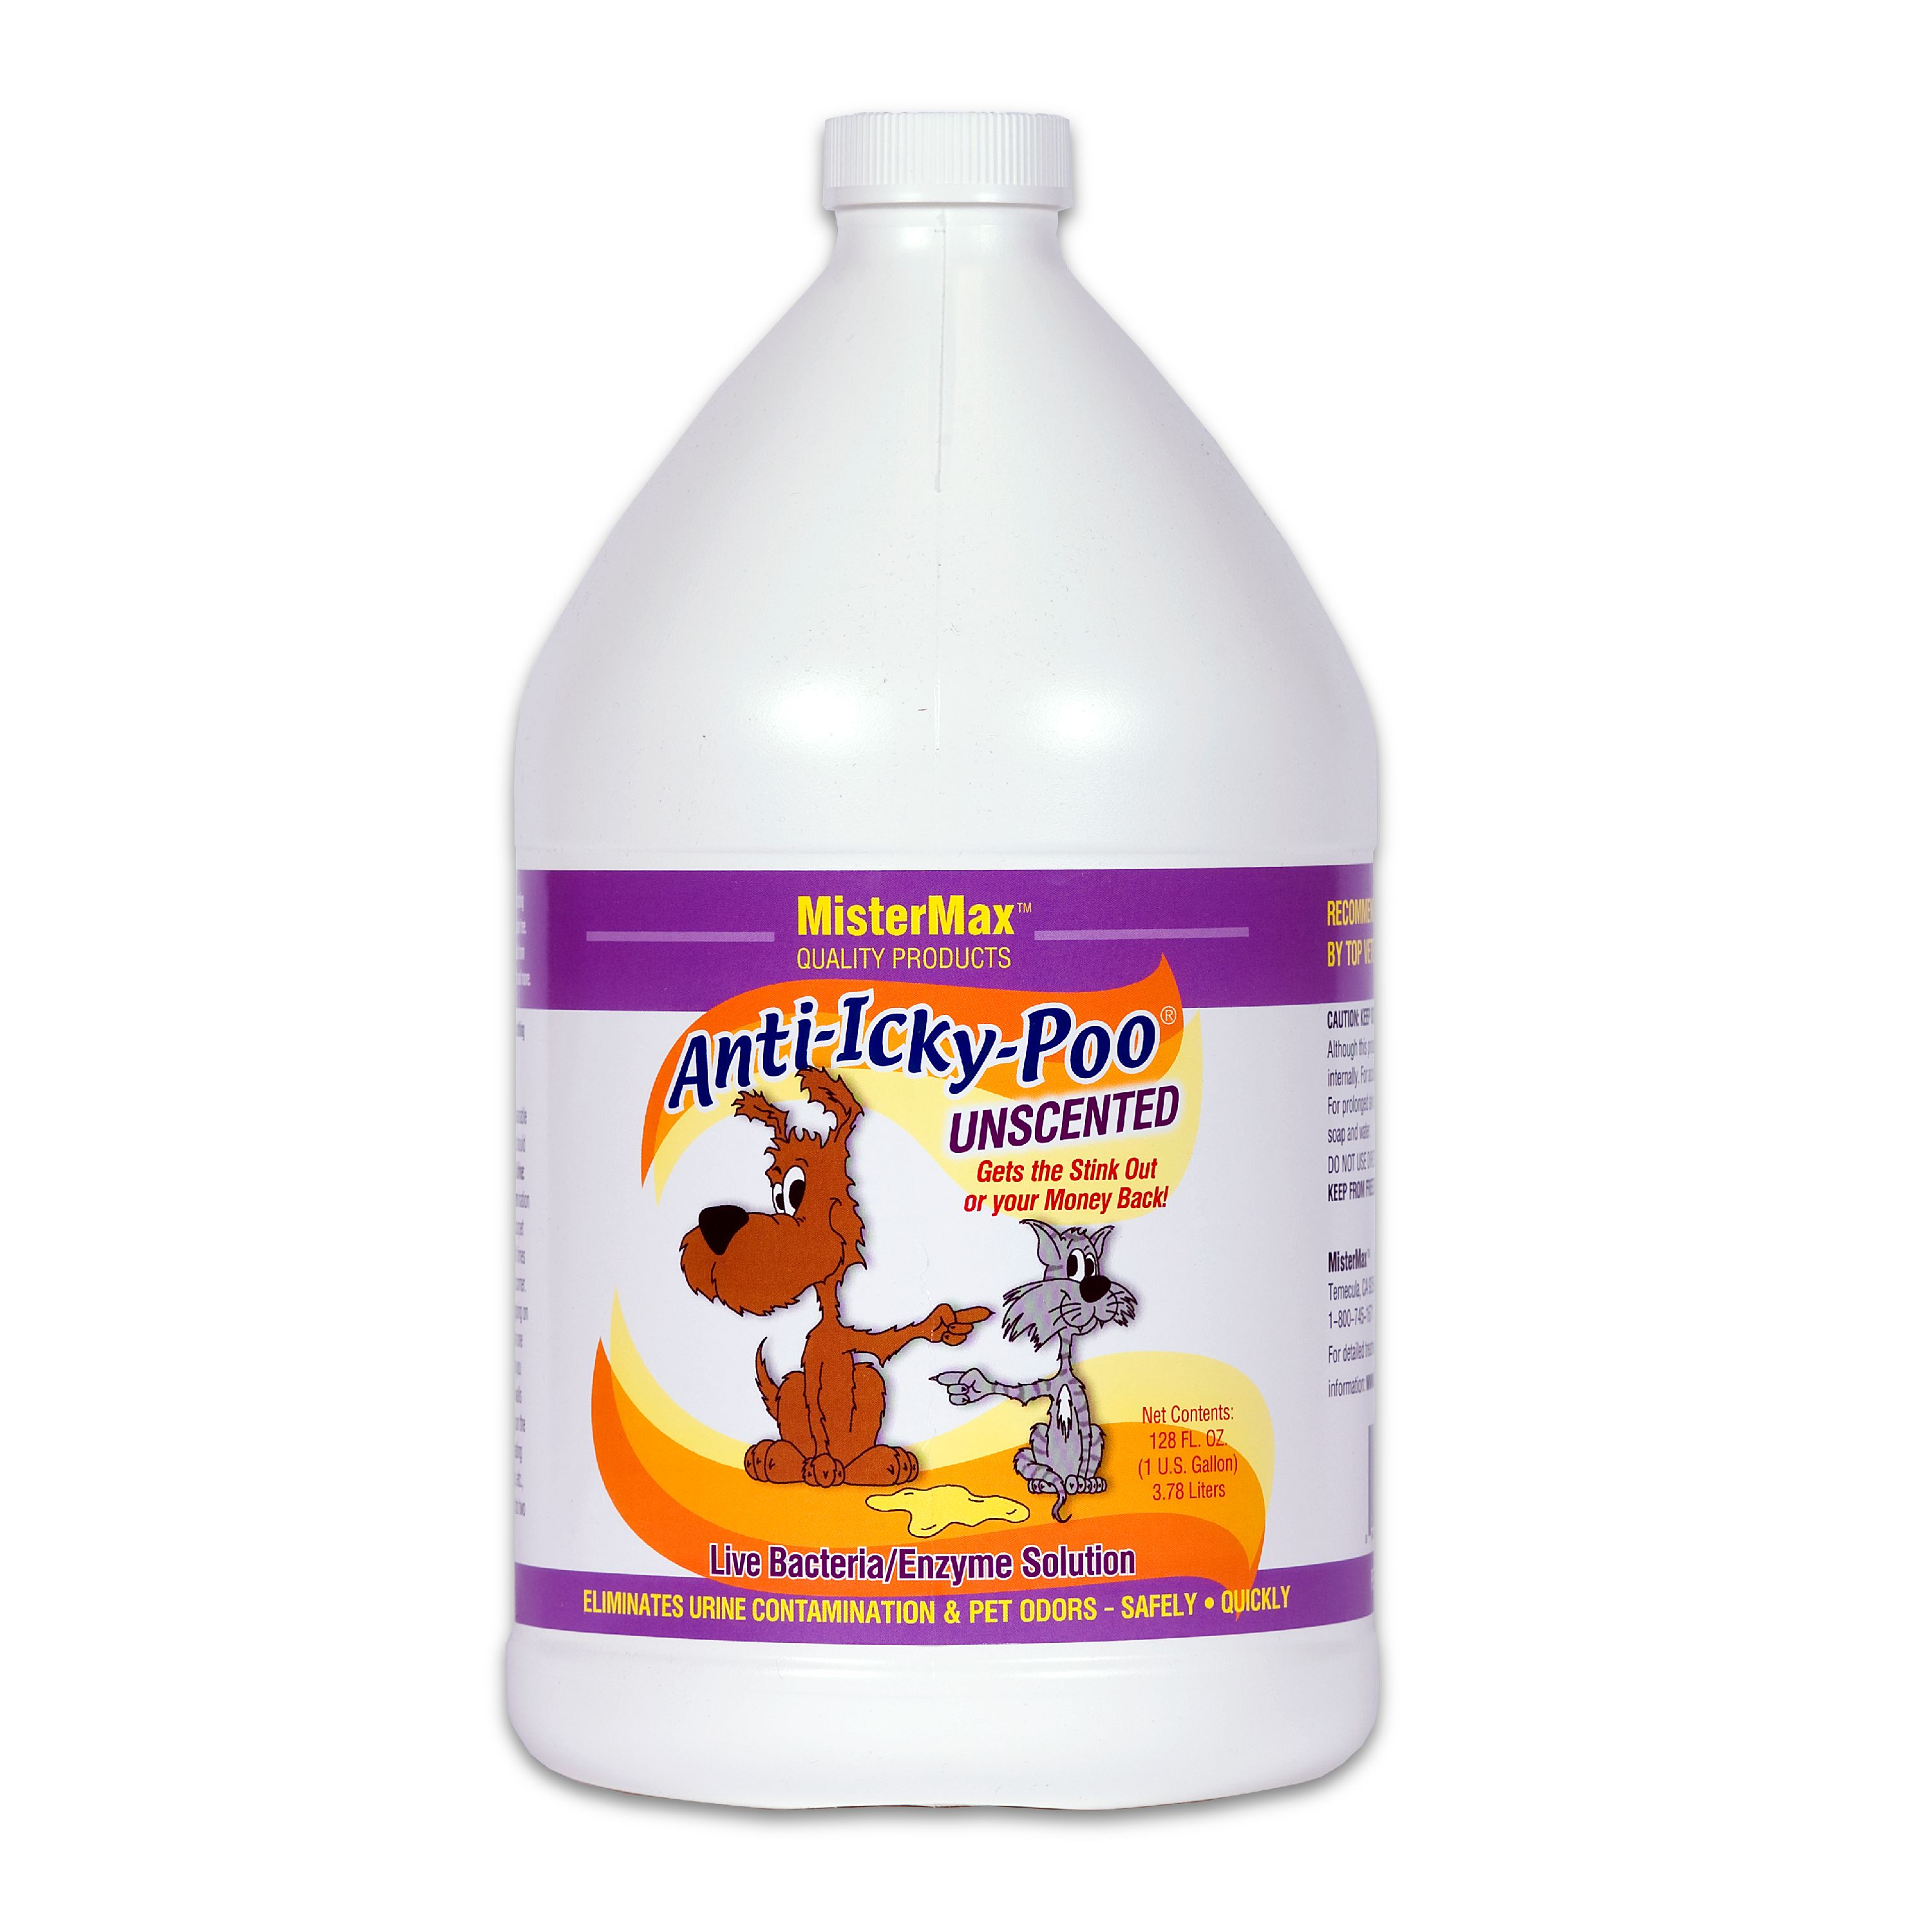 Anti-Icky-Poo Unscented Gallon